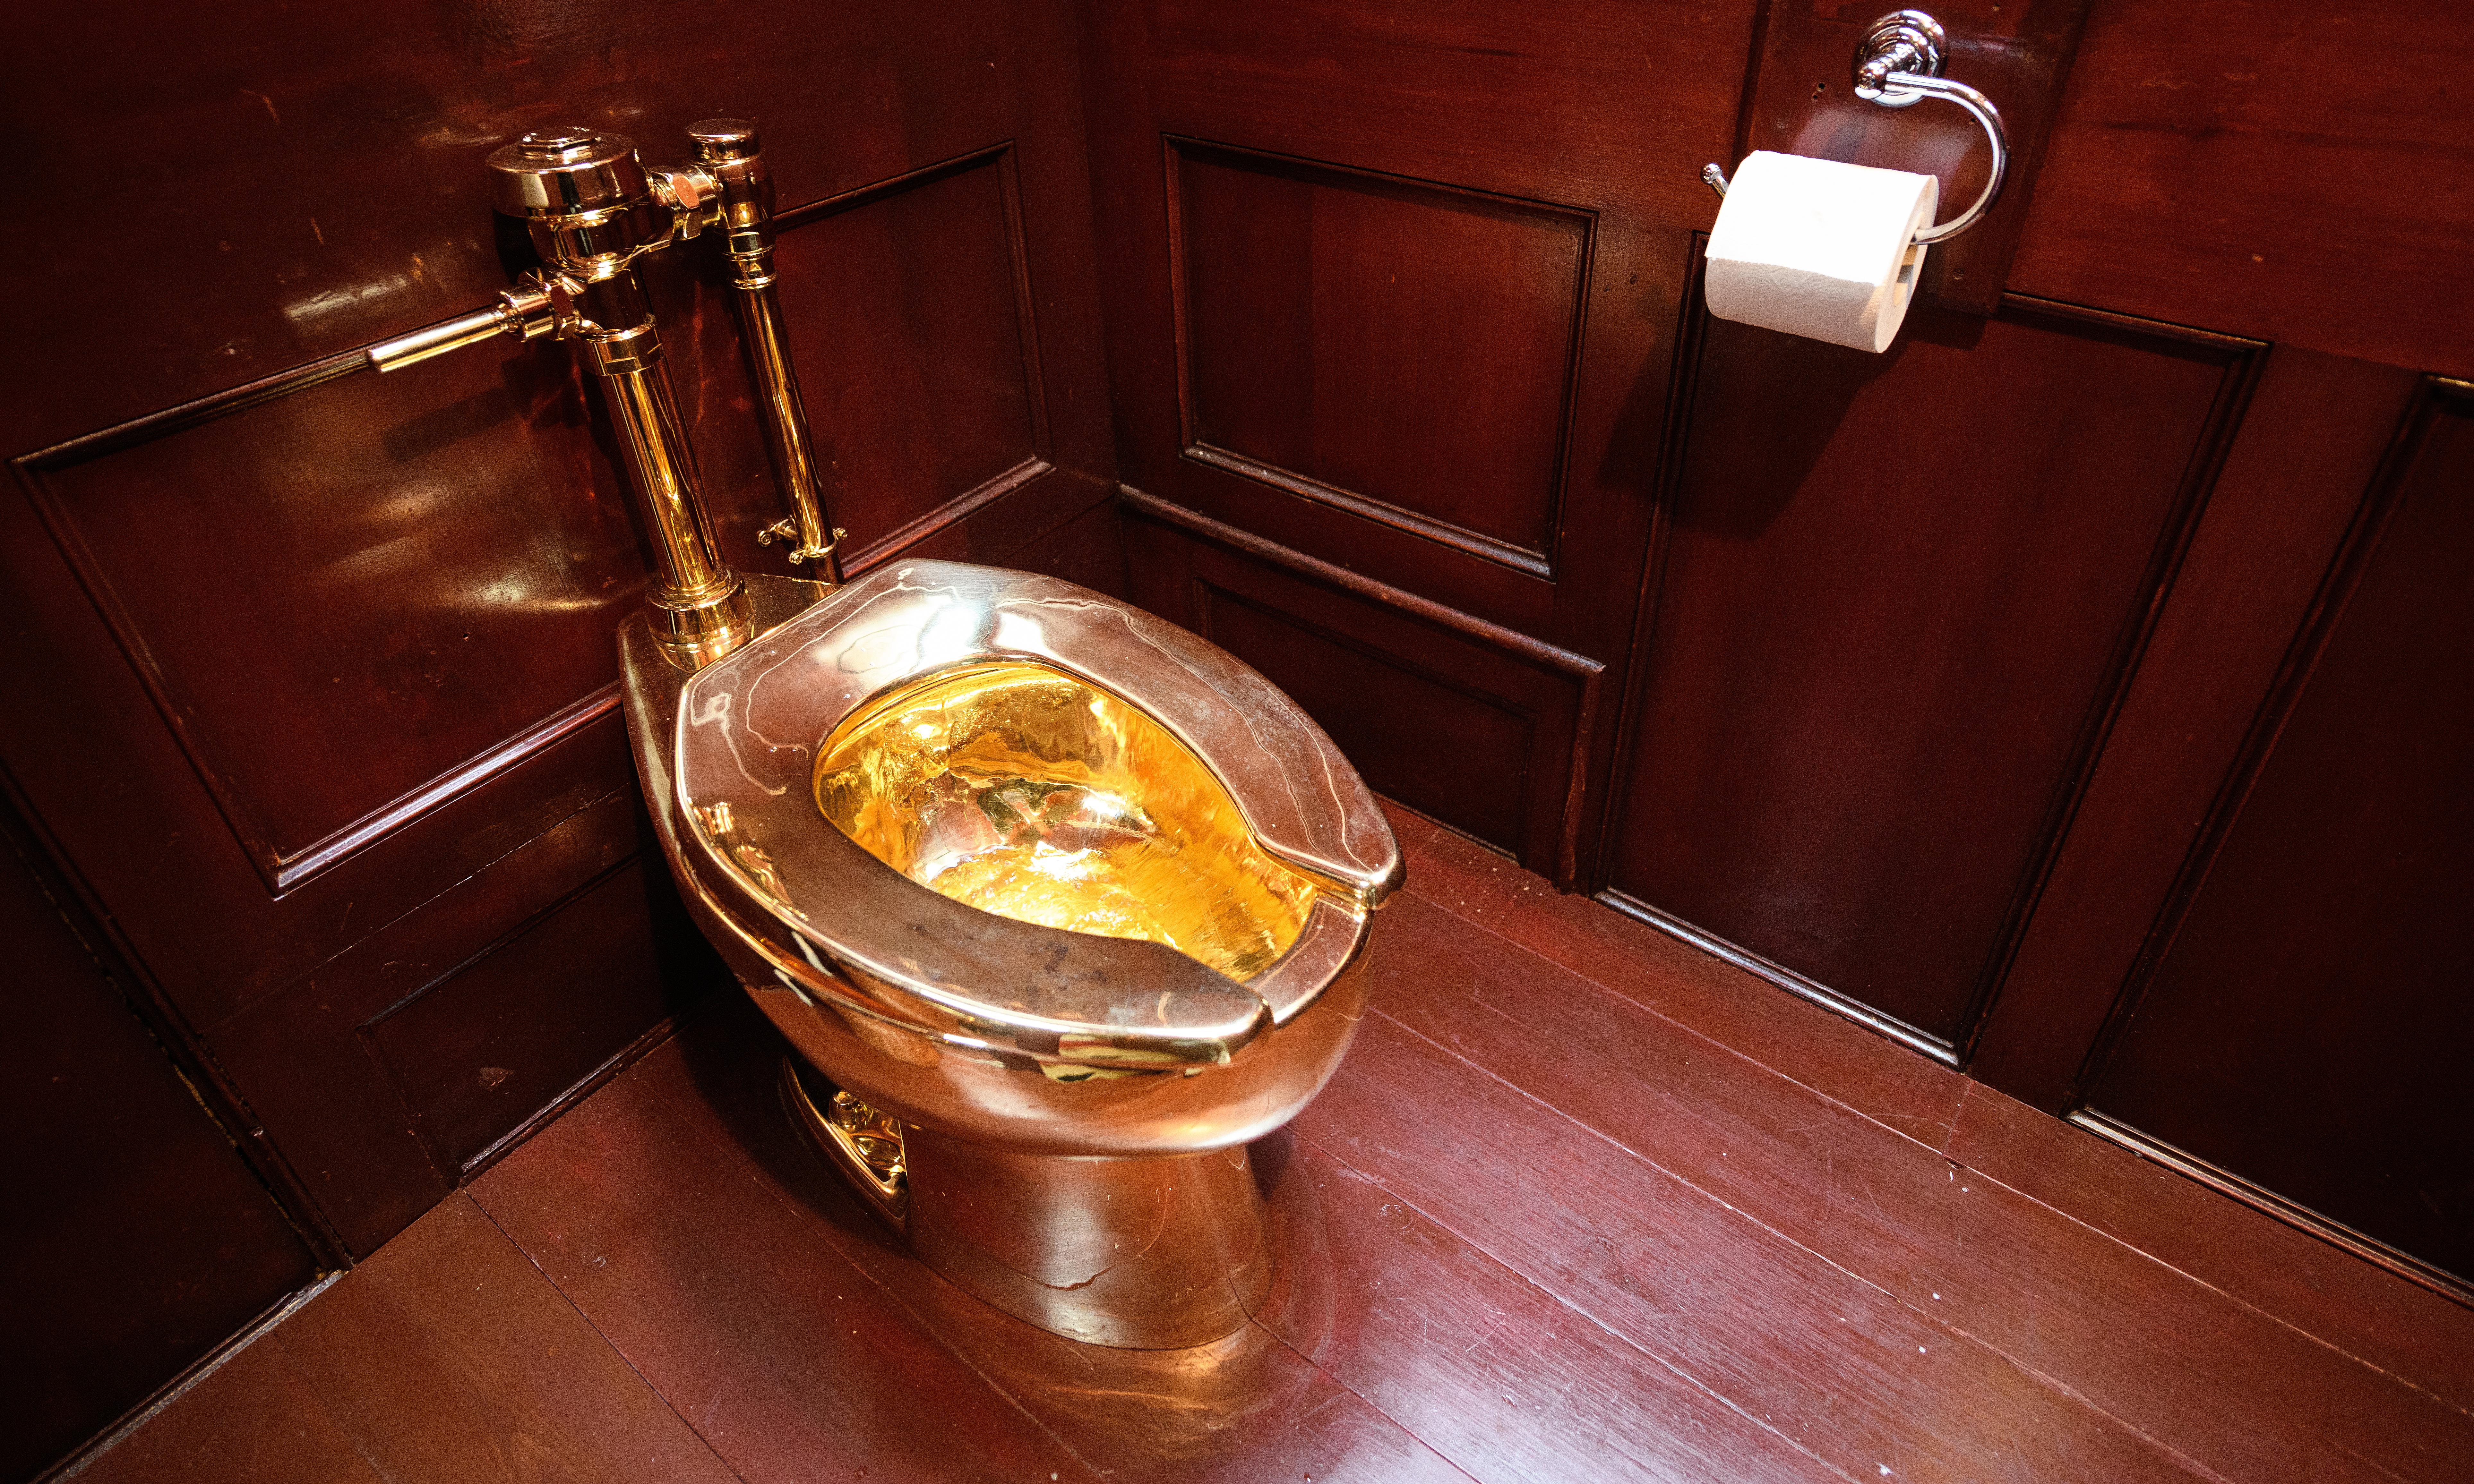 Second man arrested over Blenheim Palace gold toilet theft